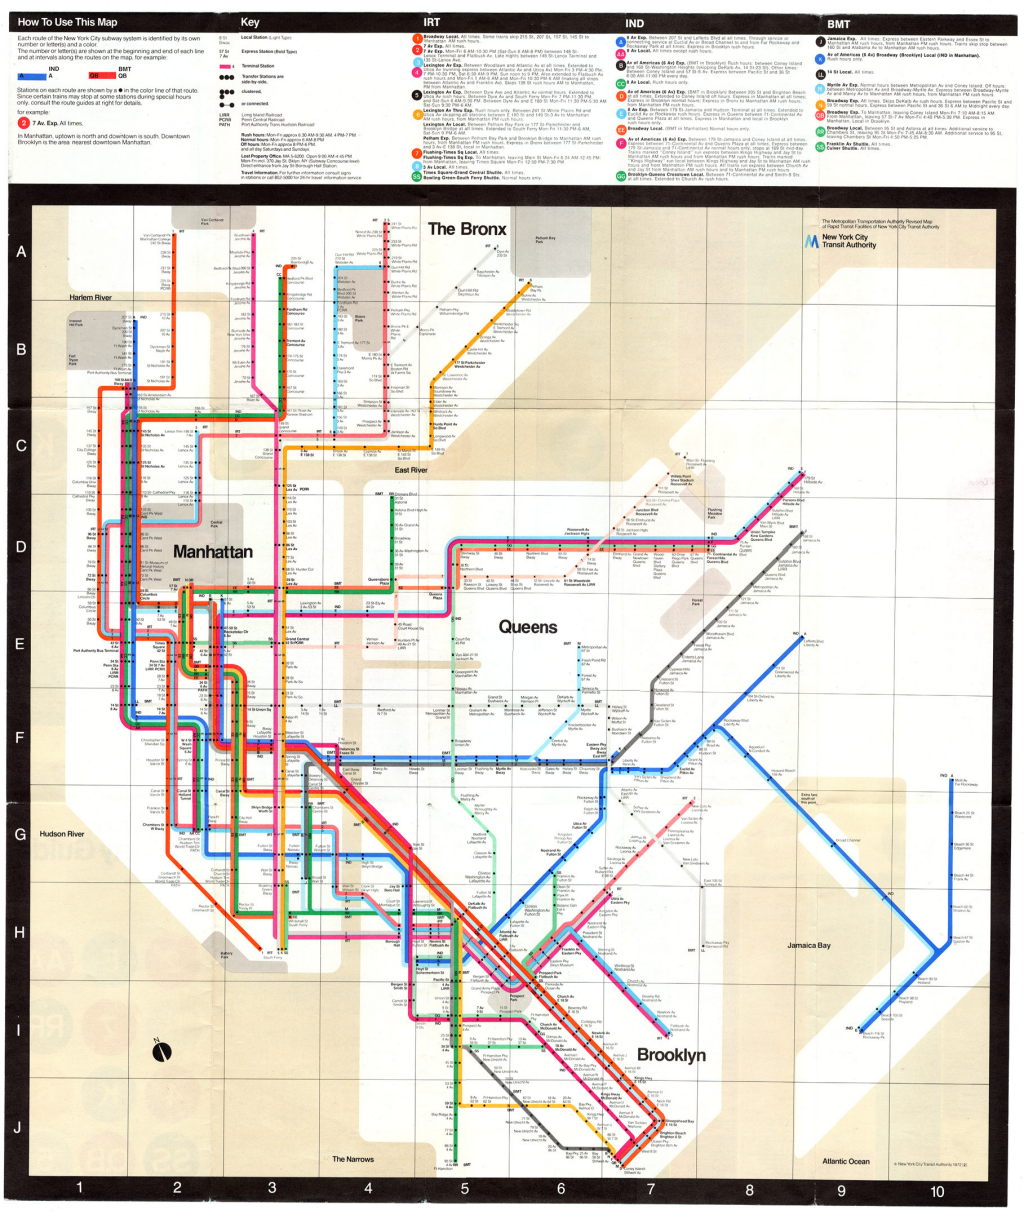 Brooklyn Subway Map Minimal.Mapcarte Commission On Map Design Page 30